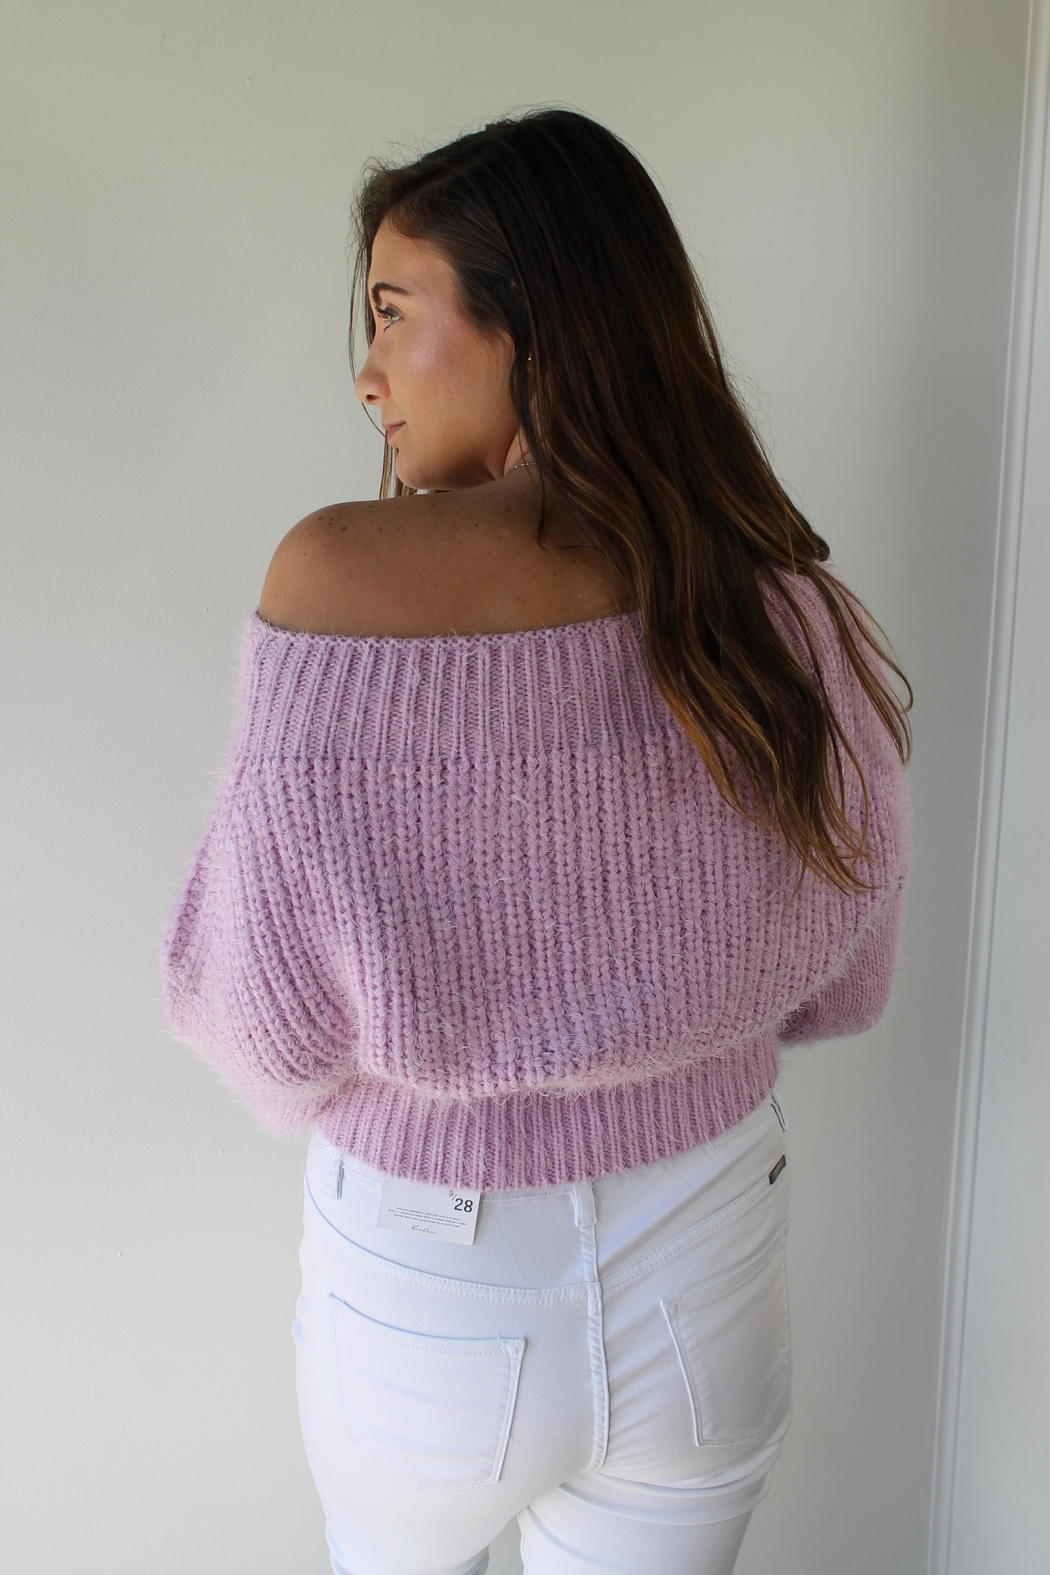 Cotton Candy LA Aspen Lilac Sweater - Front Full Image